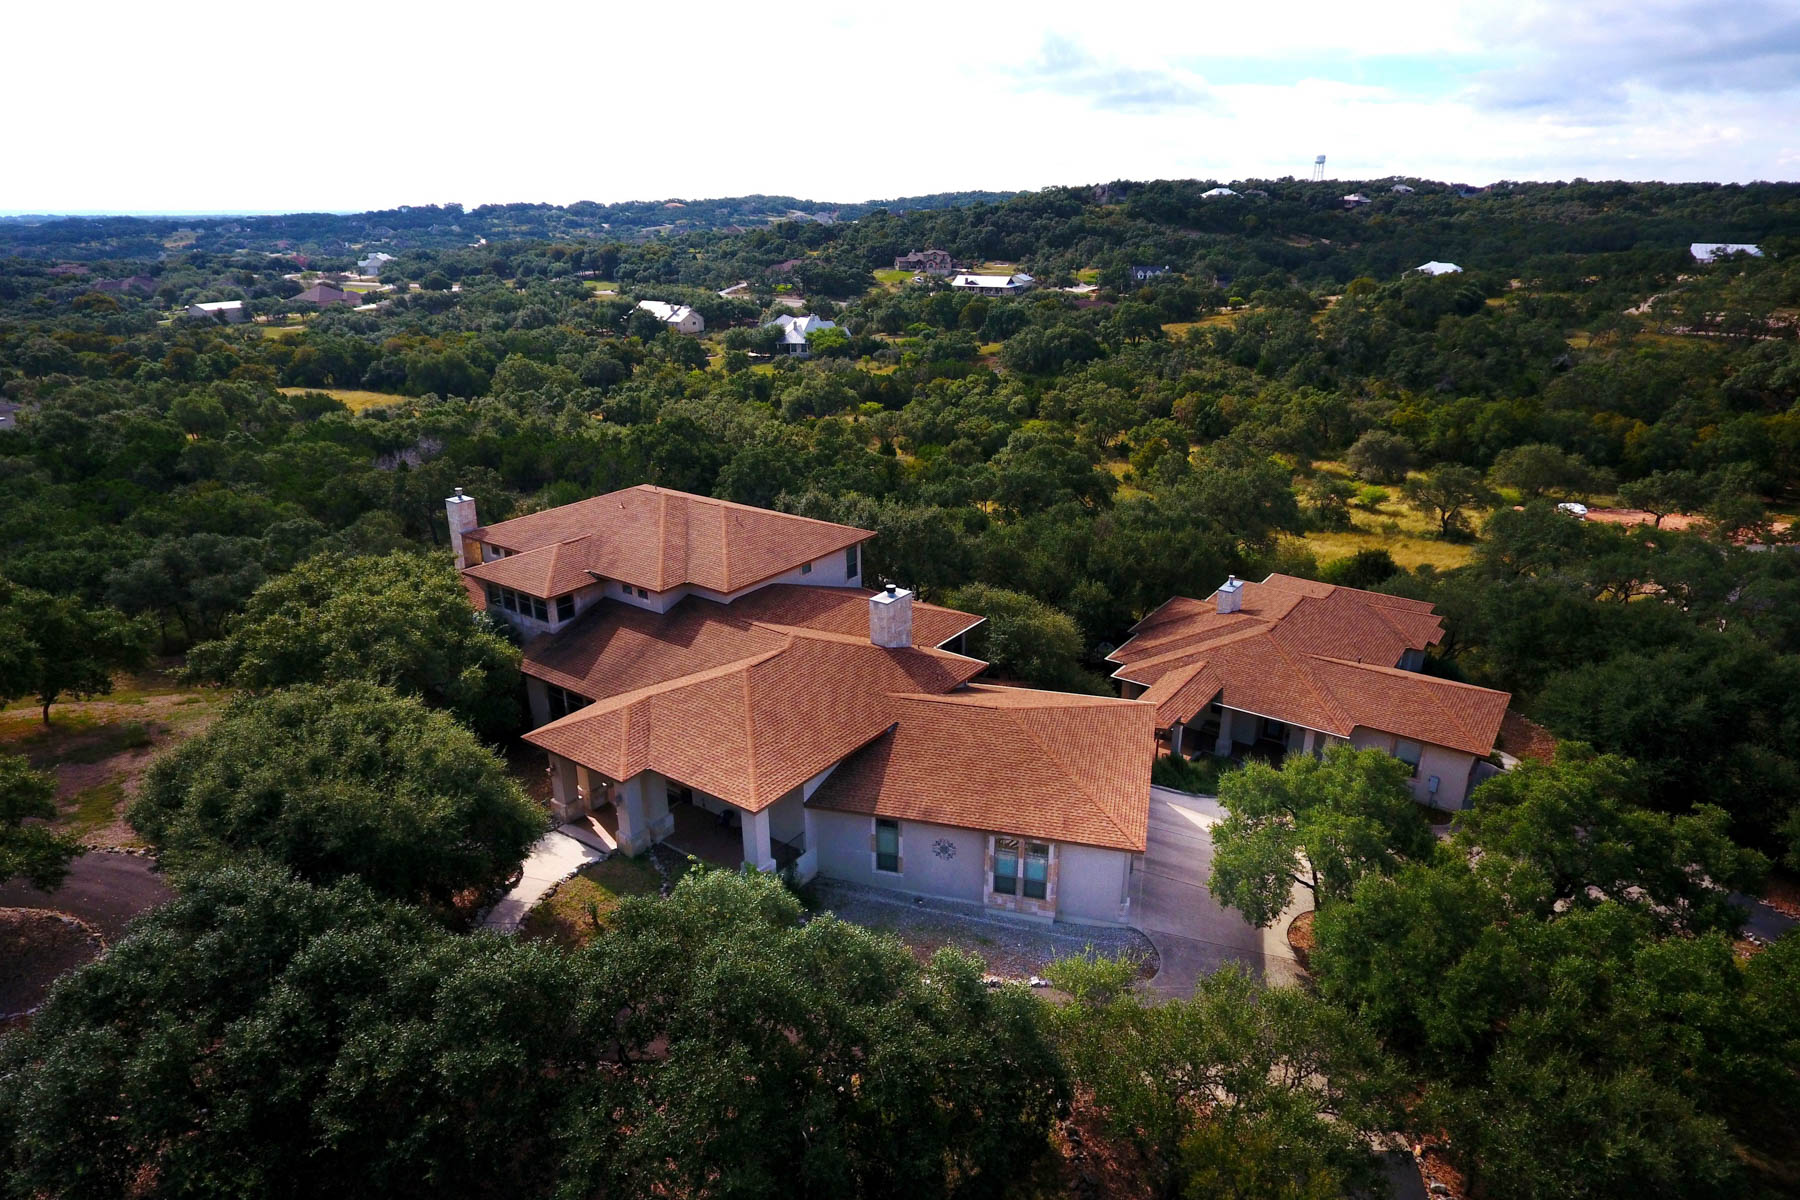 Casa Unifamiliar por un Venta en Two Separate Custom Homes with Stunning Views 319 Westin Hills New Braunfels, Texas 78132 Estados Unidos